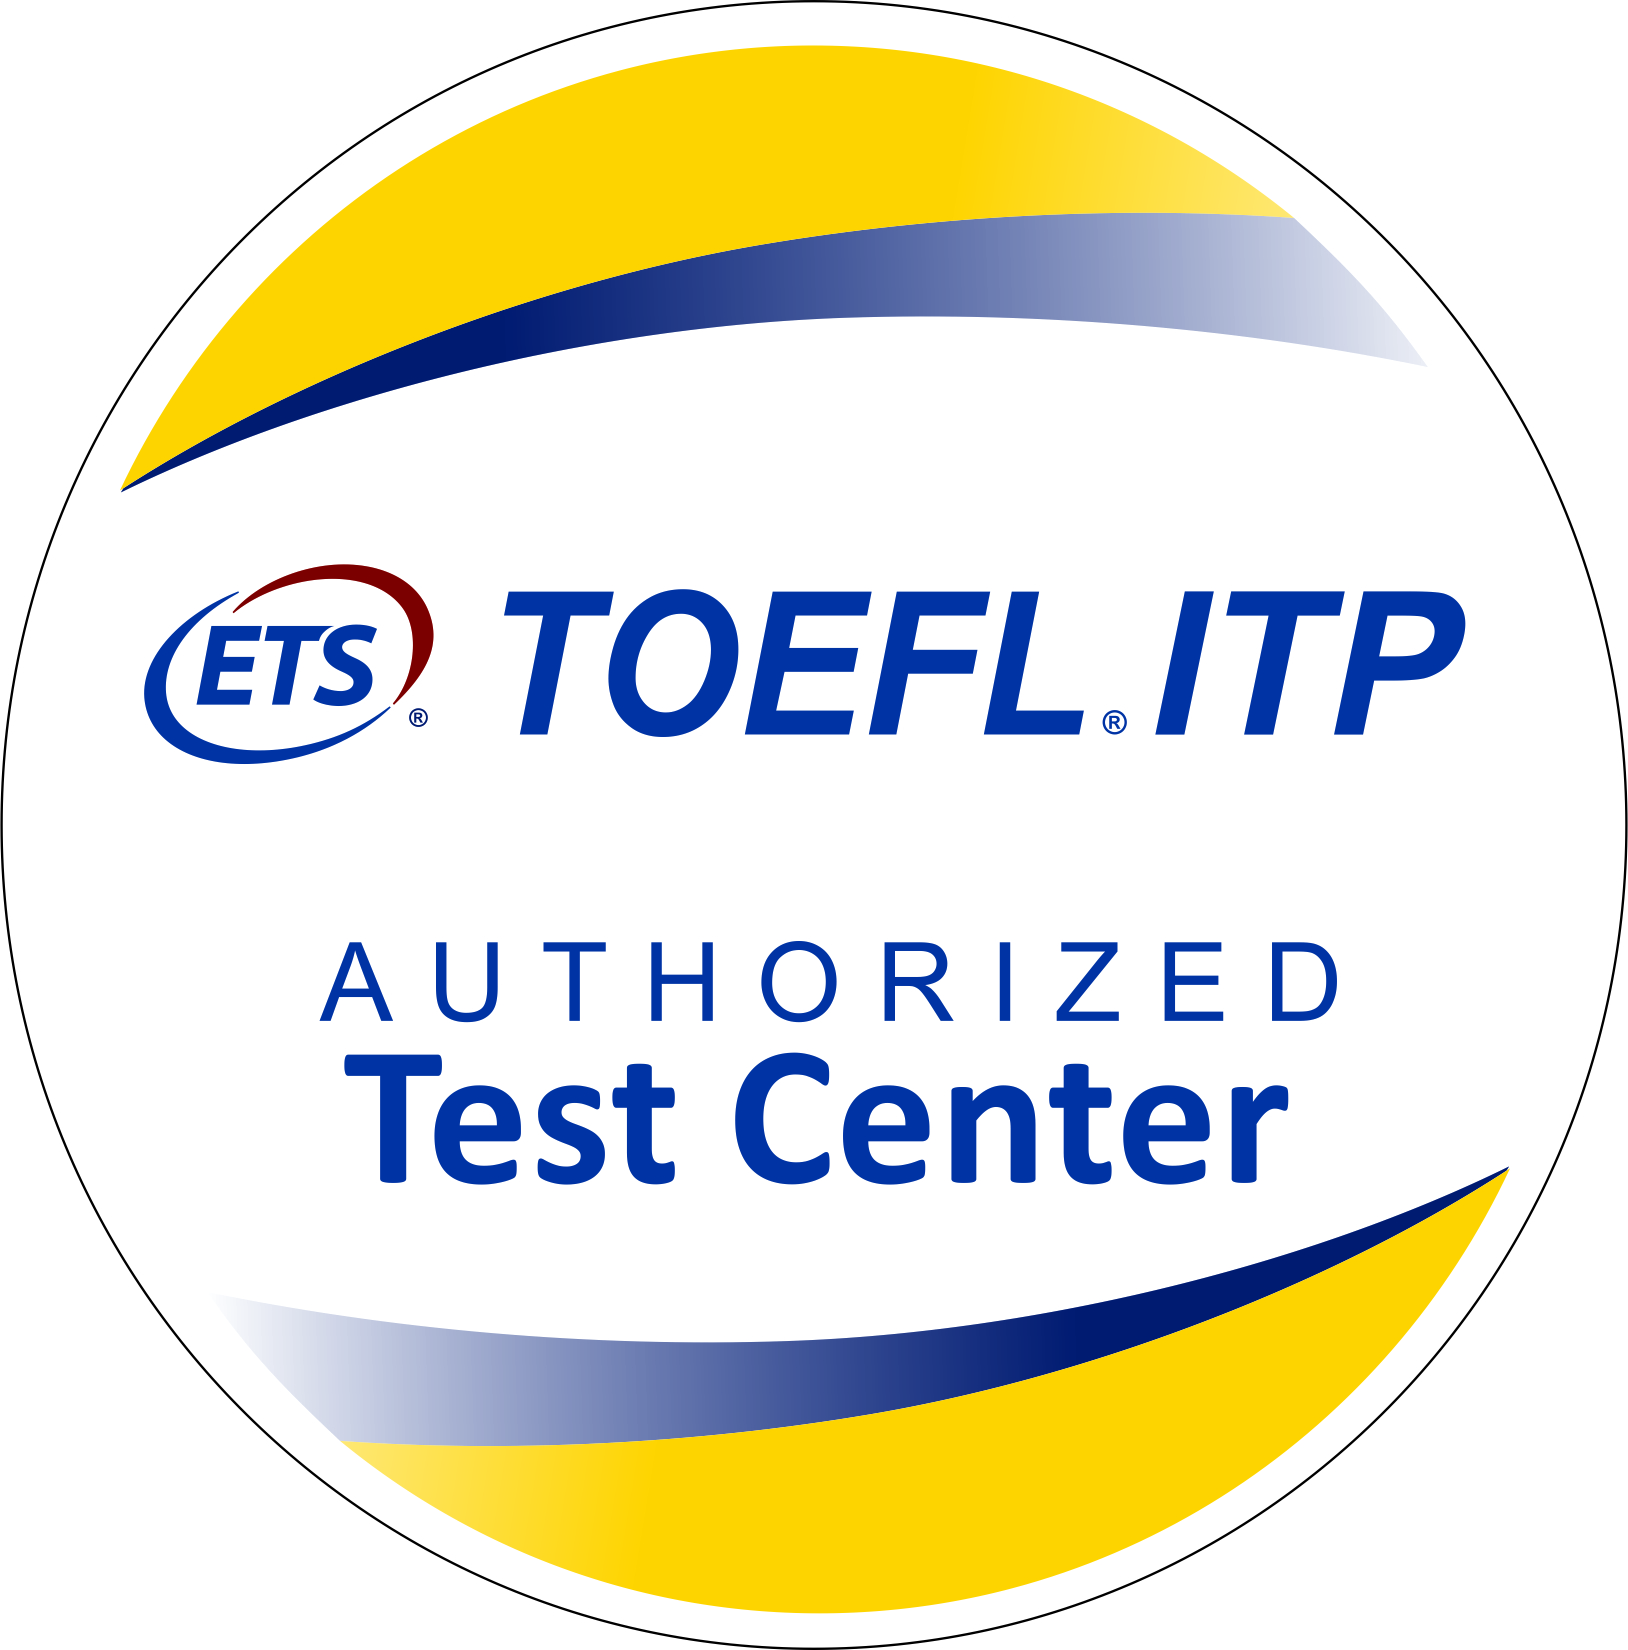 Exame TOEFL by ETS.